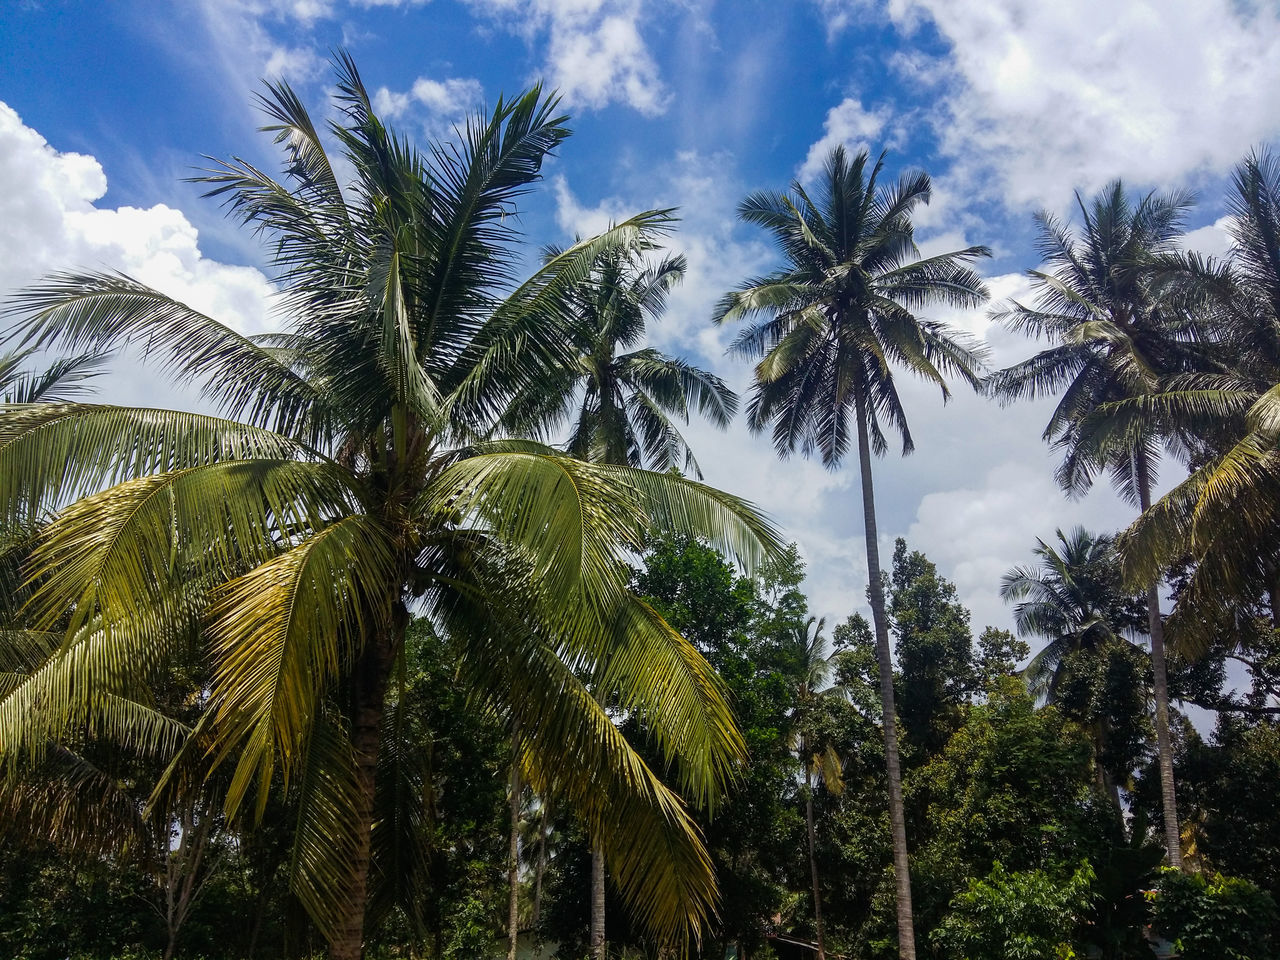 Nature Low Angle View Sky Tree Growth No People Green Color Beauty In Nature Cloud - Sky Outdoors Palm Tree Day Close-up Nature EyeEmNewHere Blue Landscape Beauty In Nature Tranquility Backgrounds Sea Beach